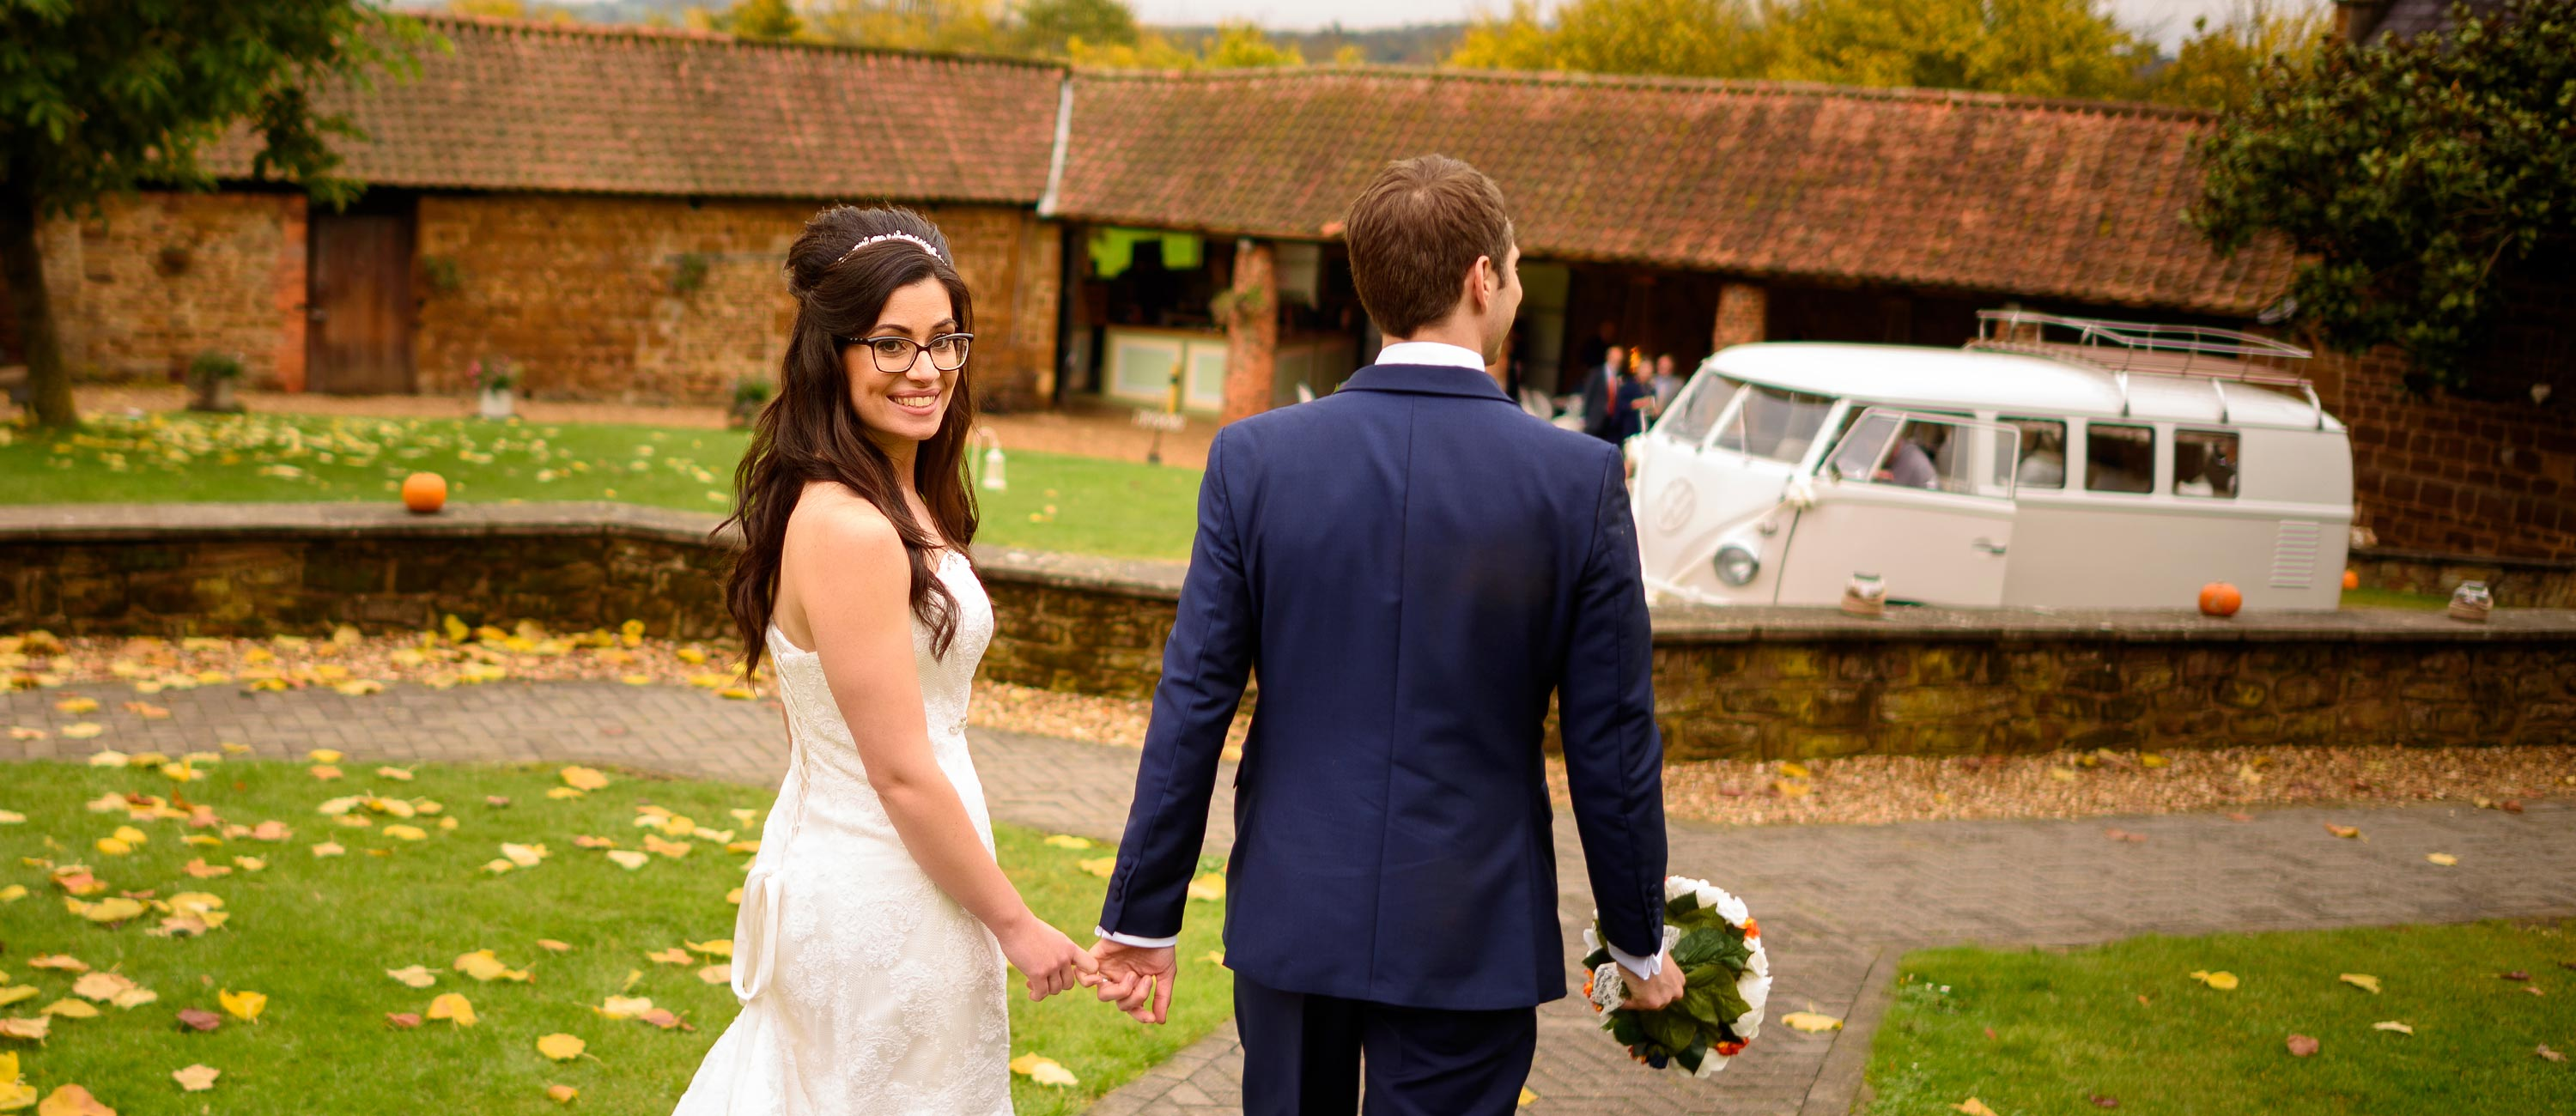 recommended wedding photographer hunsbury hill centre